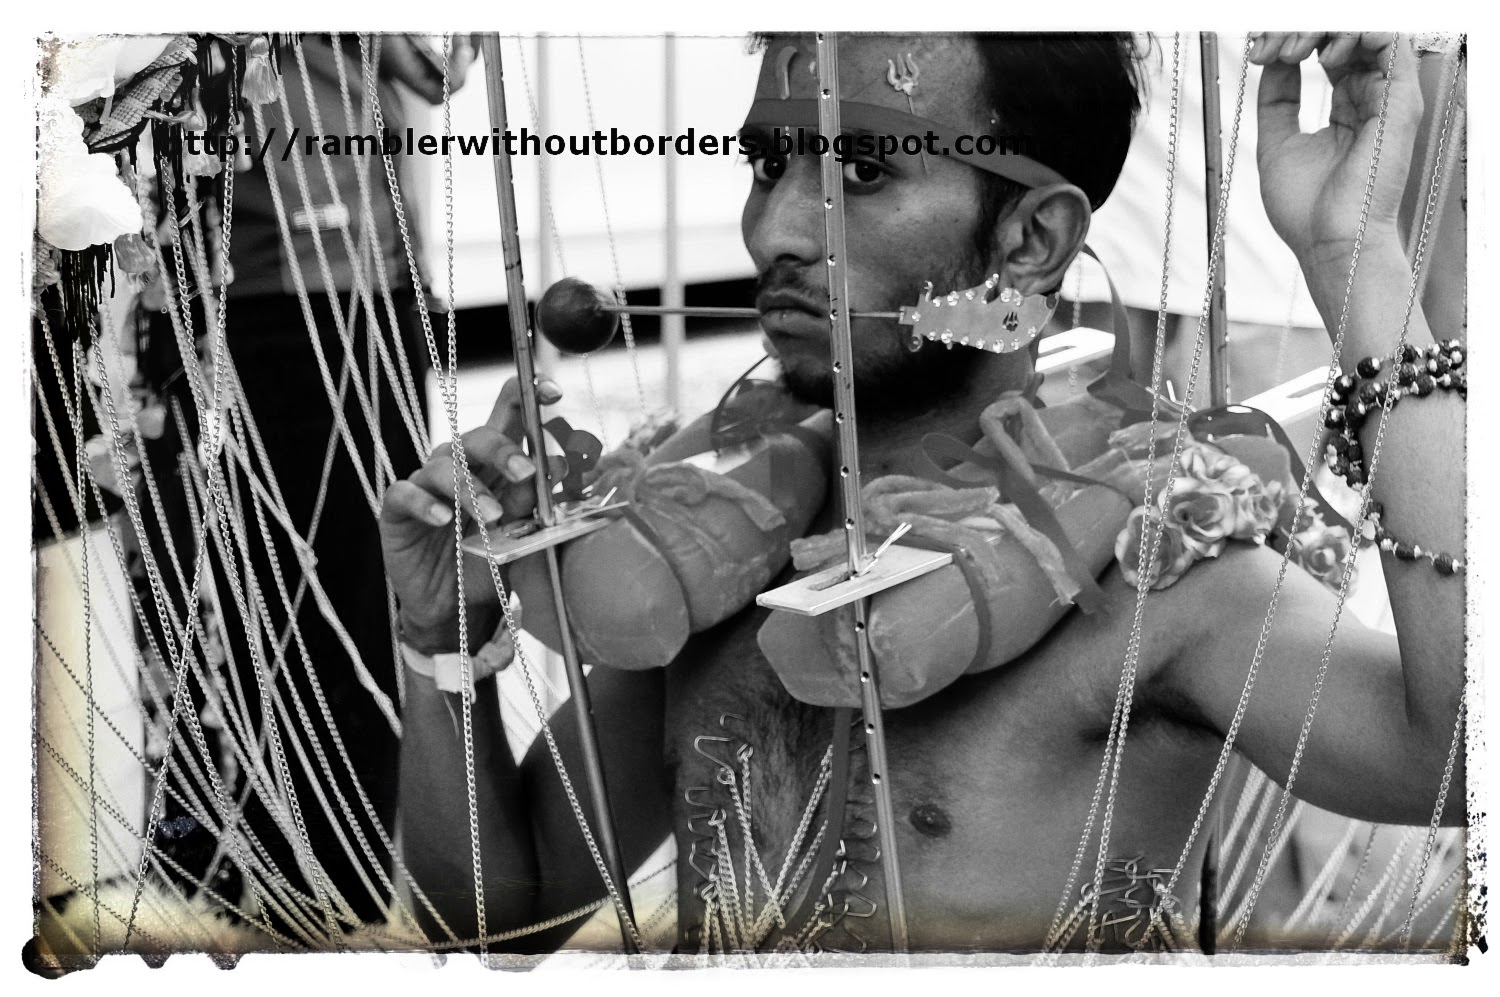 Devotee carrying a kavadi during Thaipusam Festival, Singapore